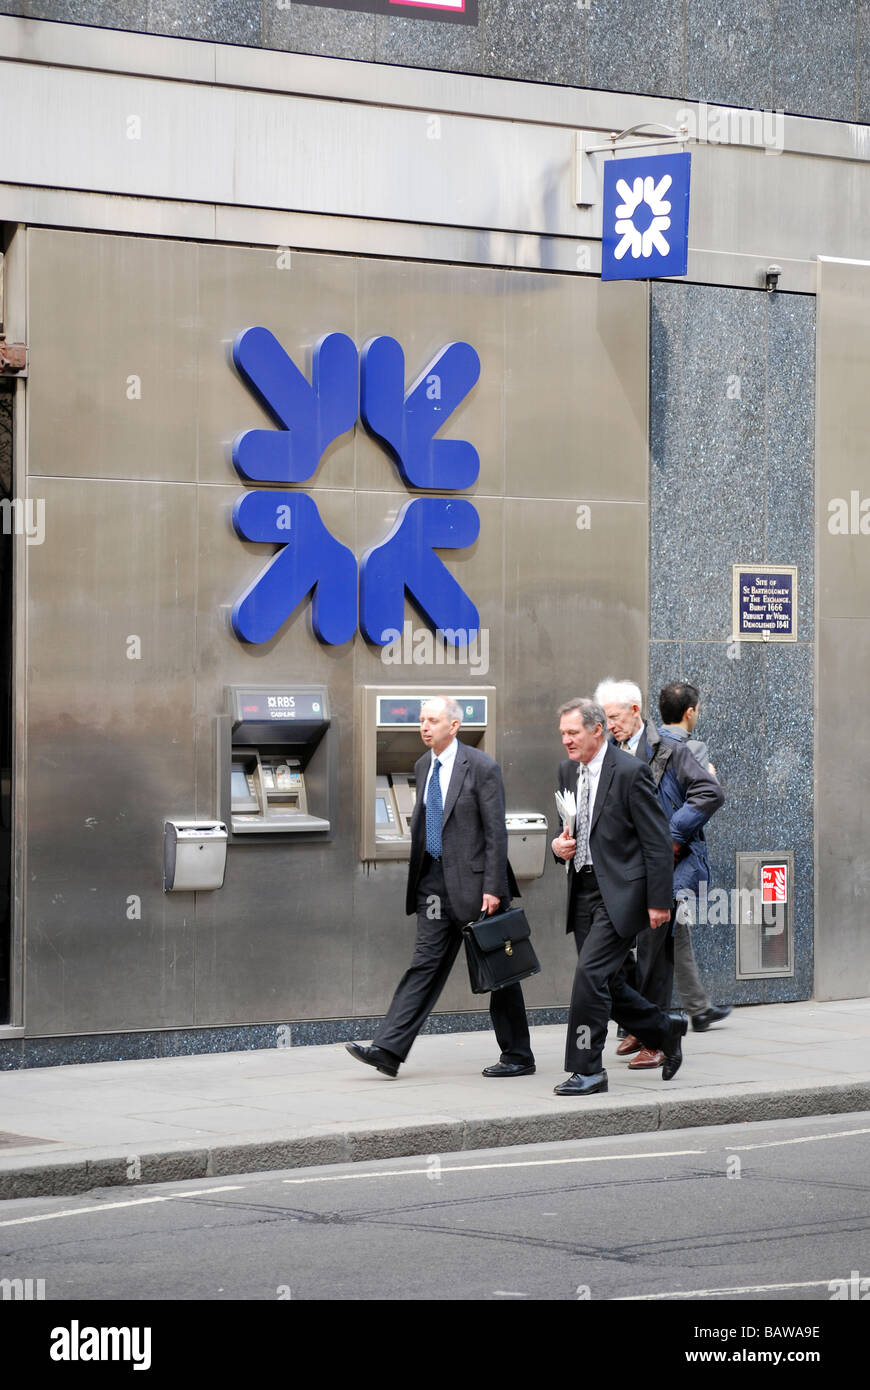 RBS Royal Bank of Scotland cash point Bankers - Stock Image